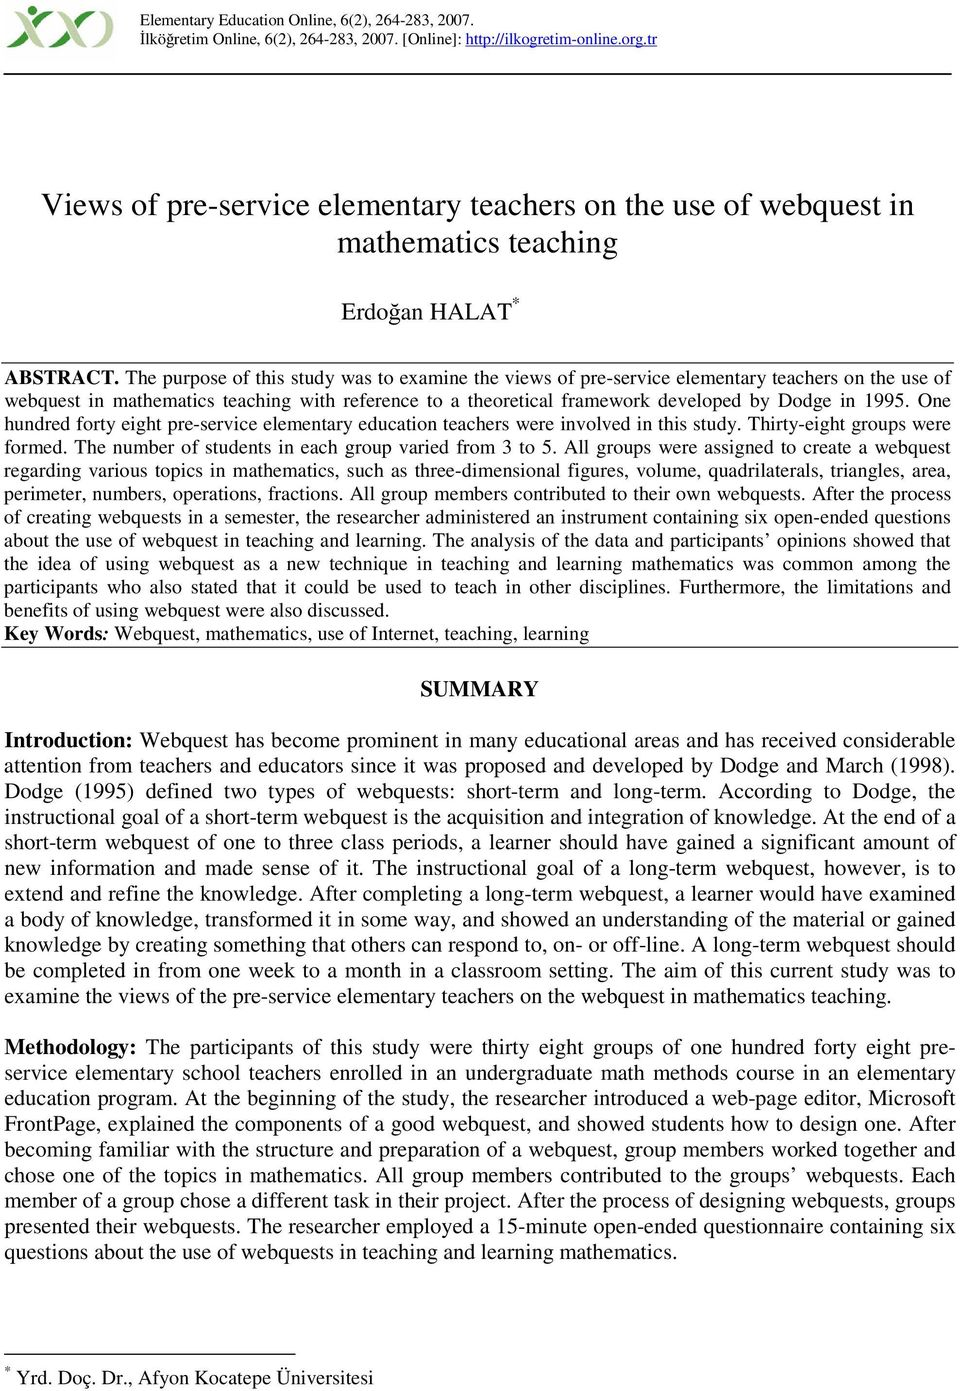 The purpose of this study was to examine the views of pre-service elementary teachers on the use of webquest in mathematics teaching with reference to a theoretical framework developed by Dodge in